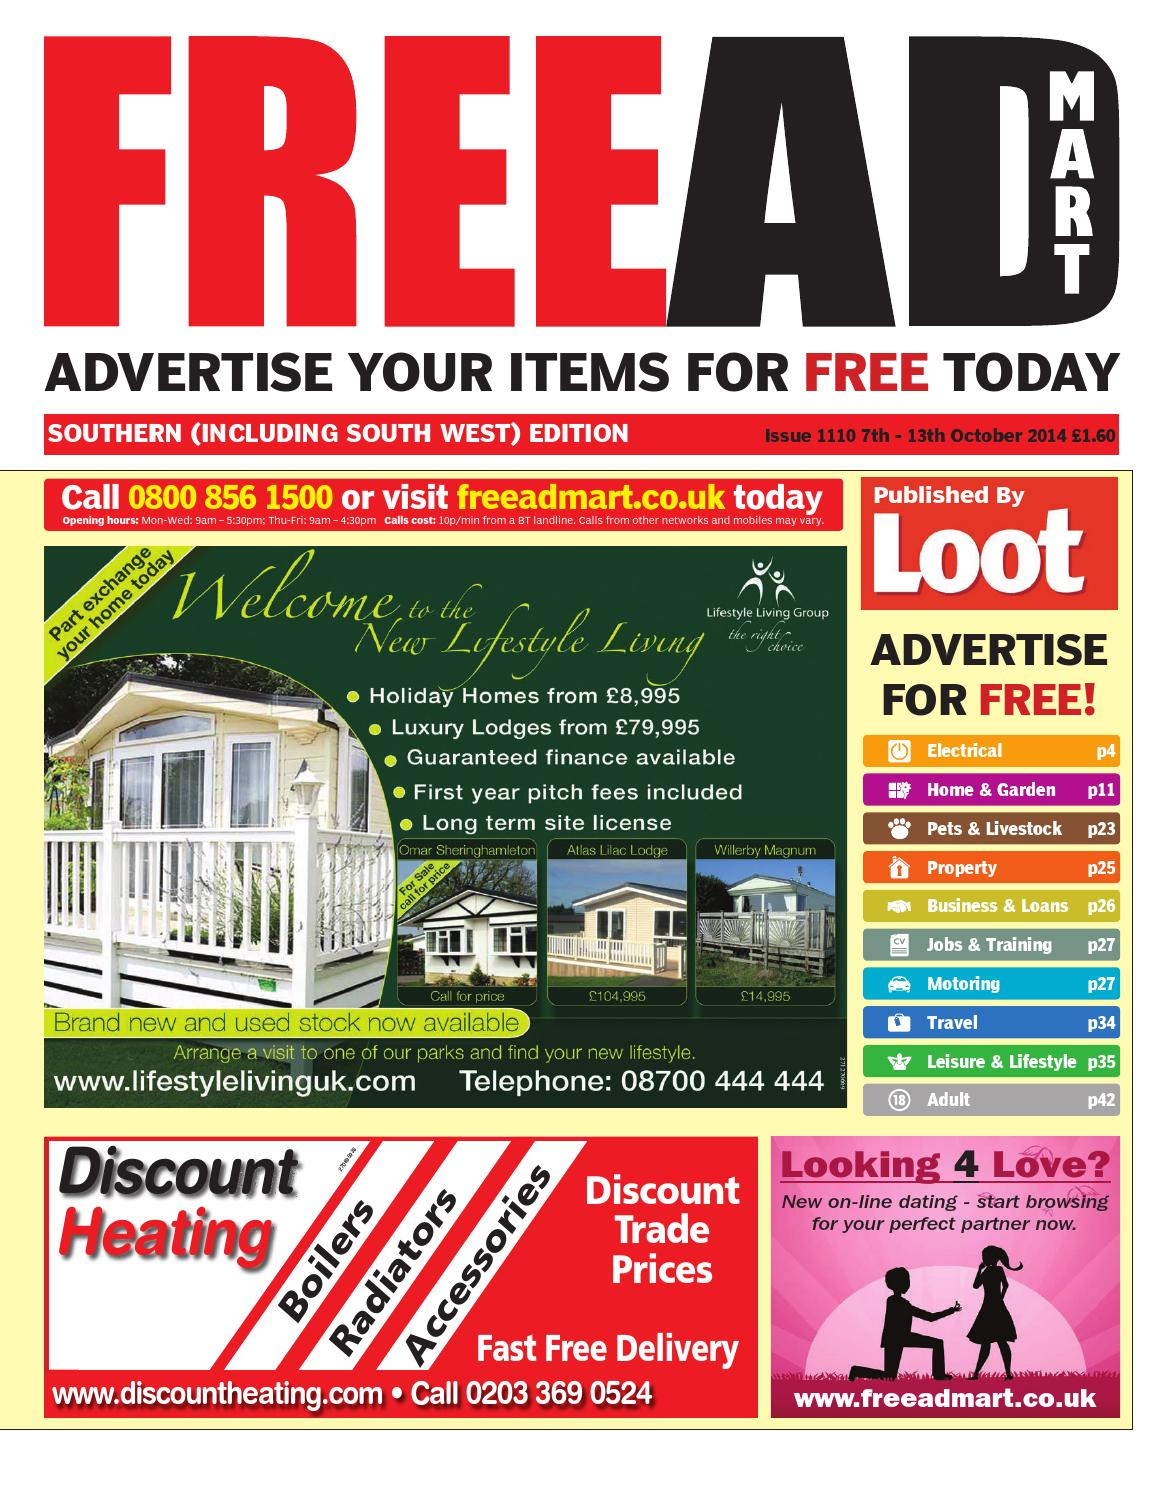 Free Ad Mart South 7th October 2014 by Loot issuu